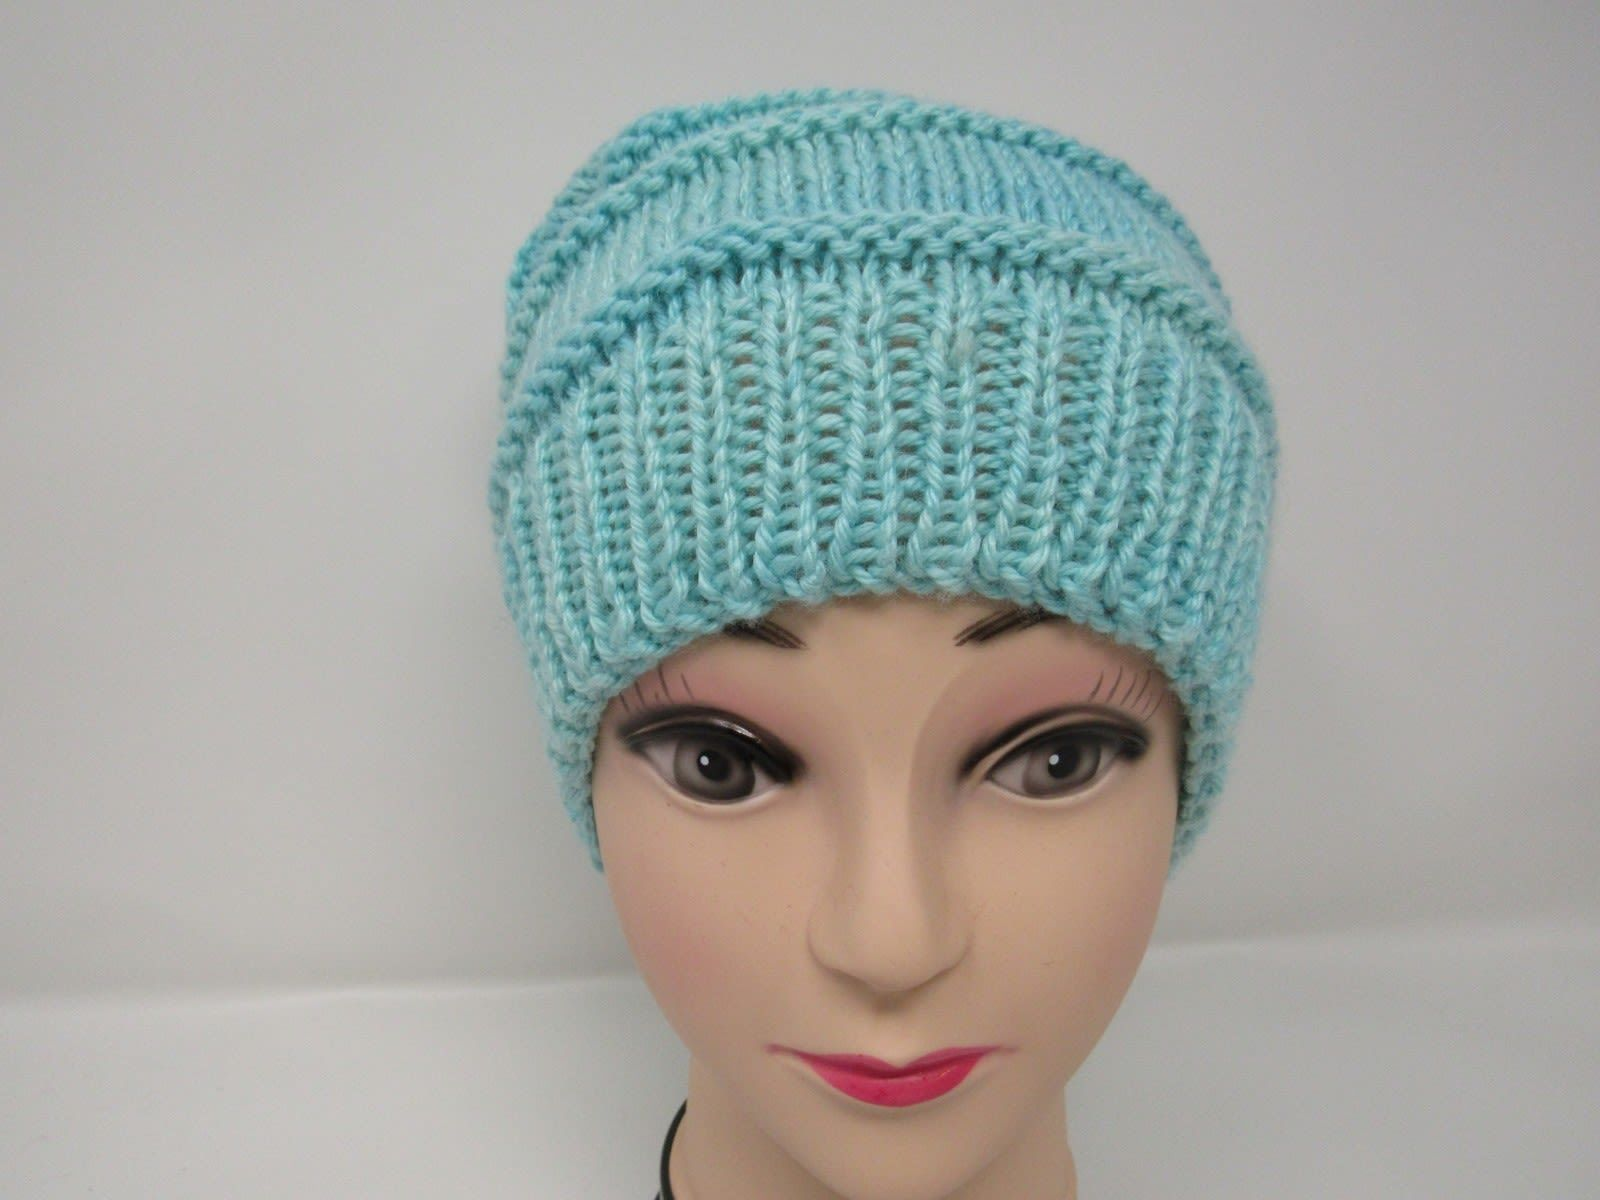 Handcrafted Knitted Hat Beanie Light Teal Textured Merino Cashmere Female Adult